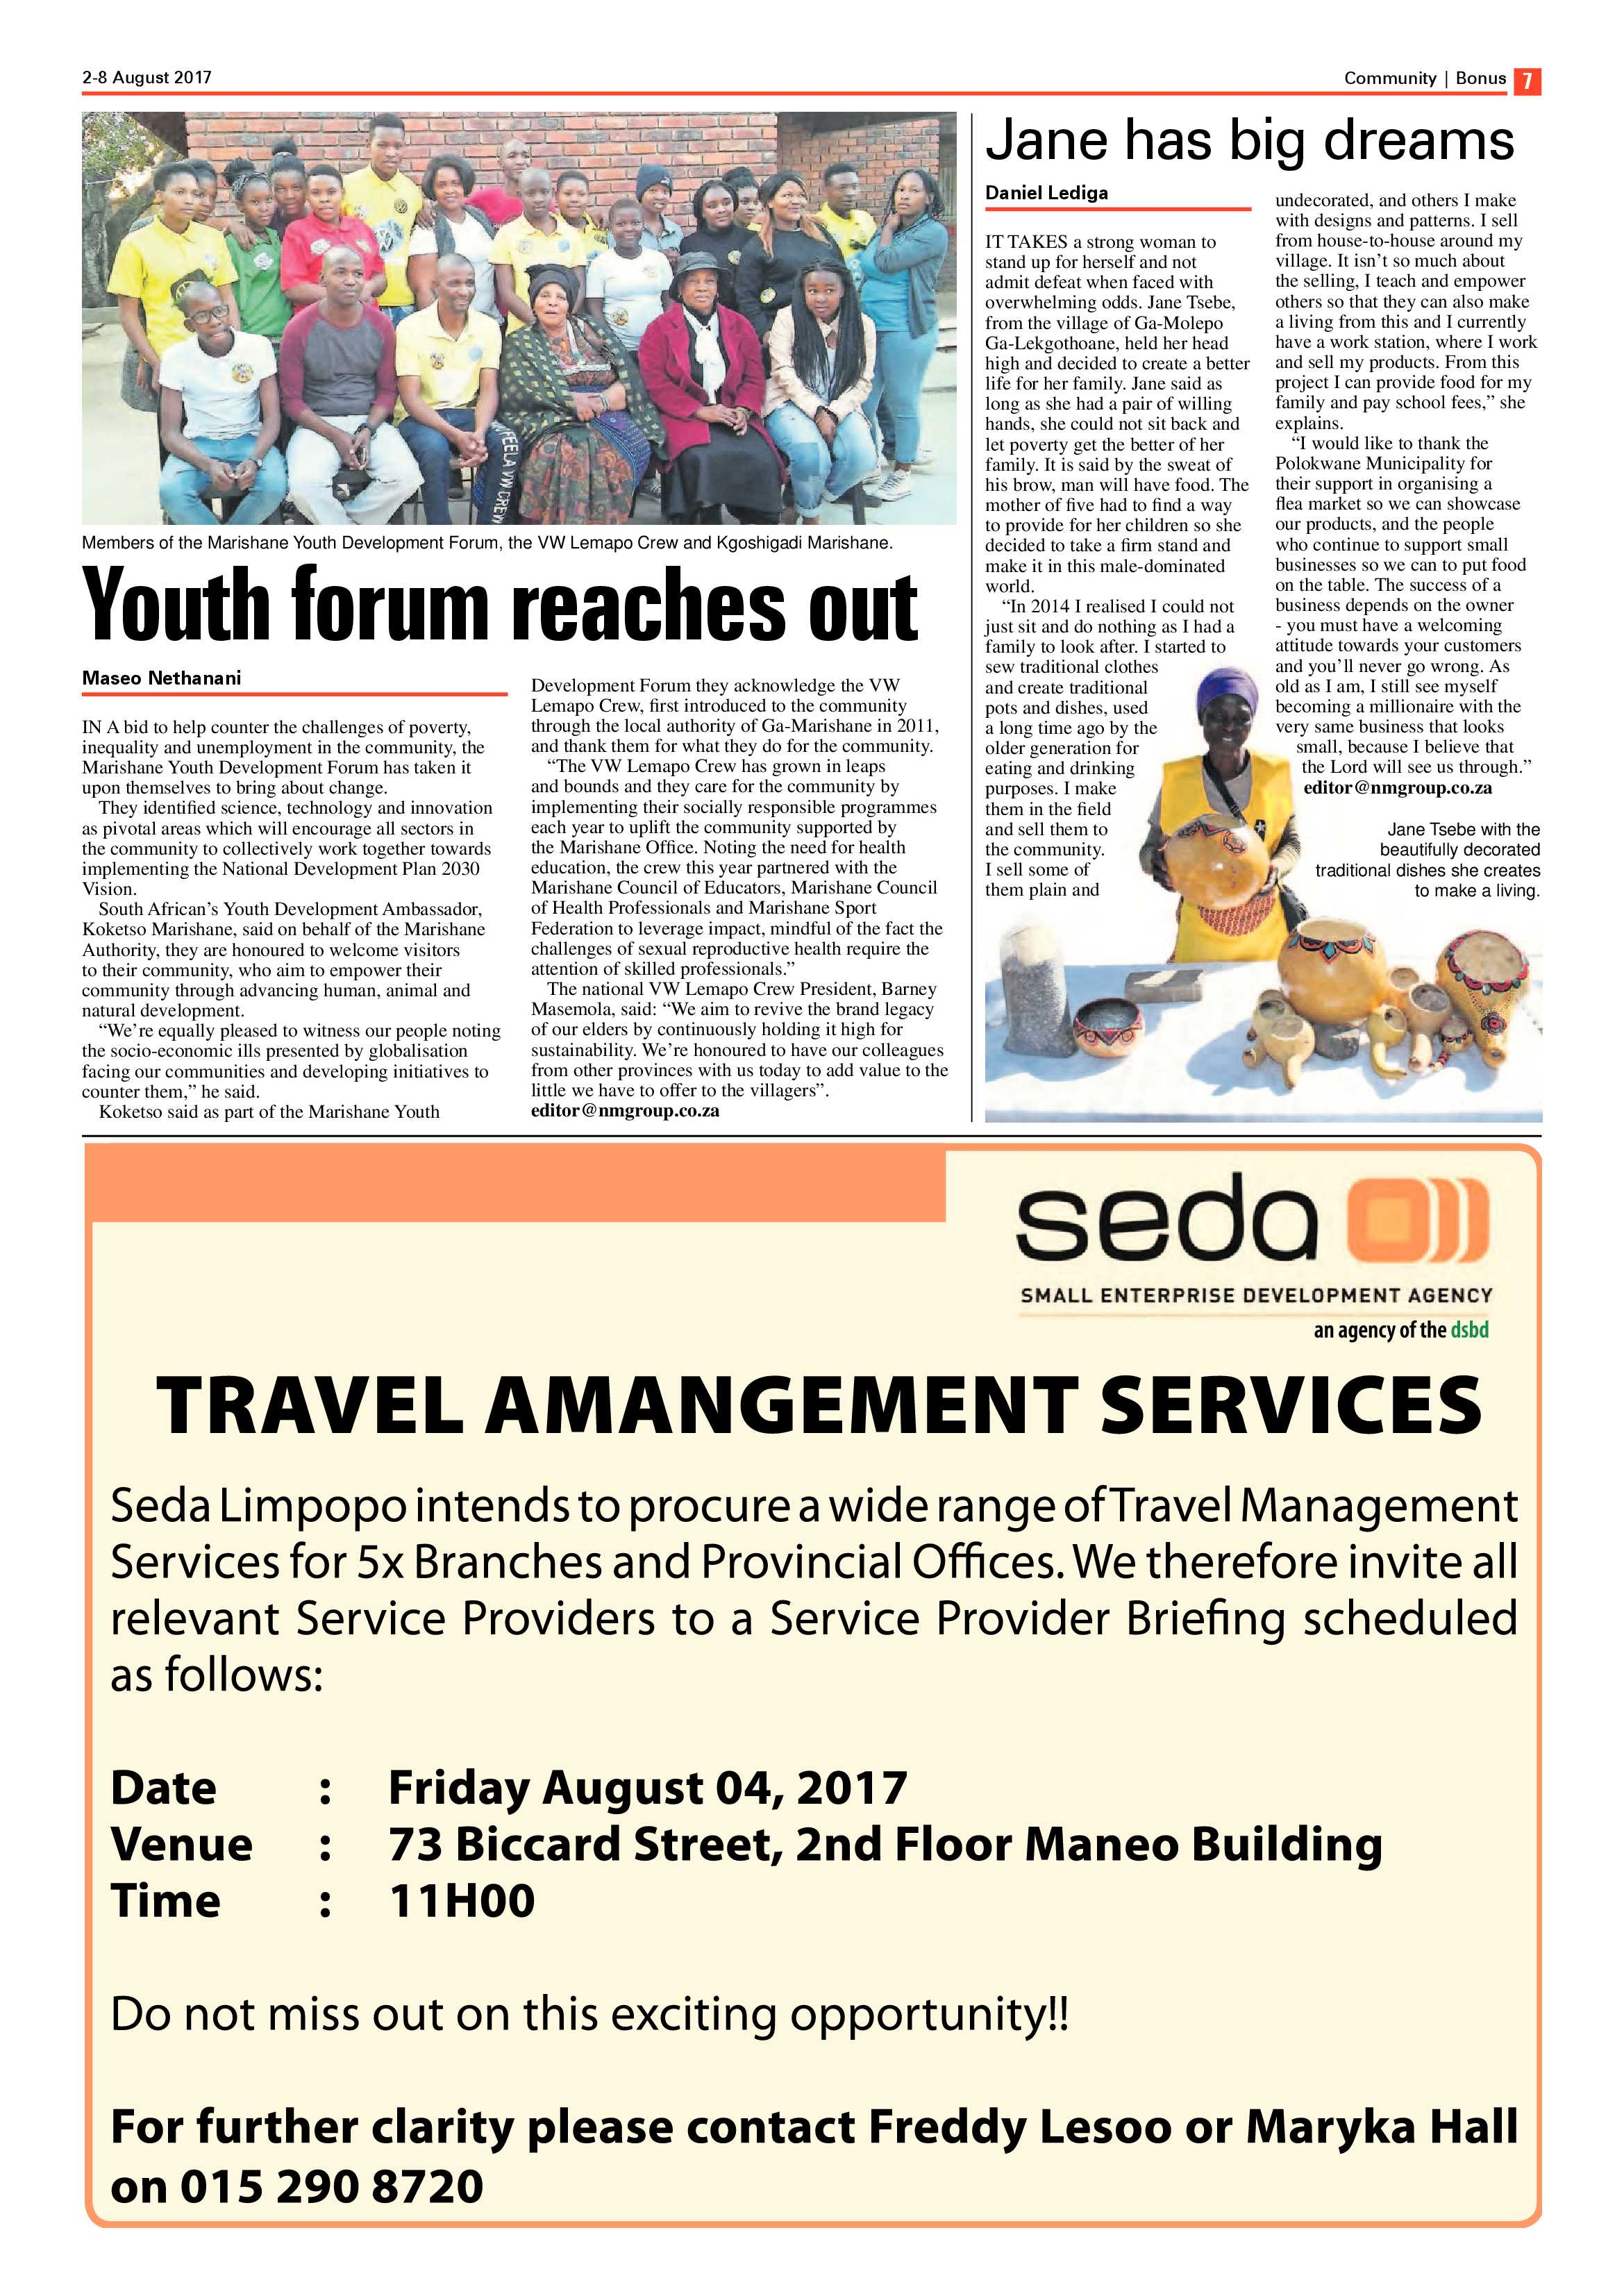 bonus-review-2-august-2017-epapers-page-7